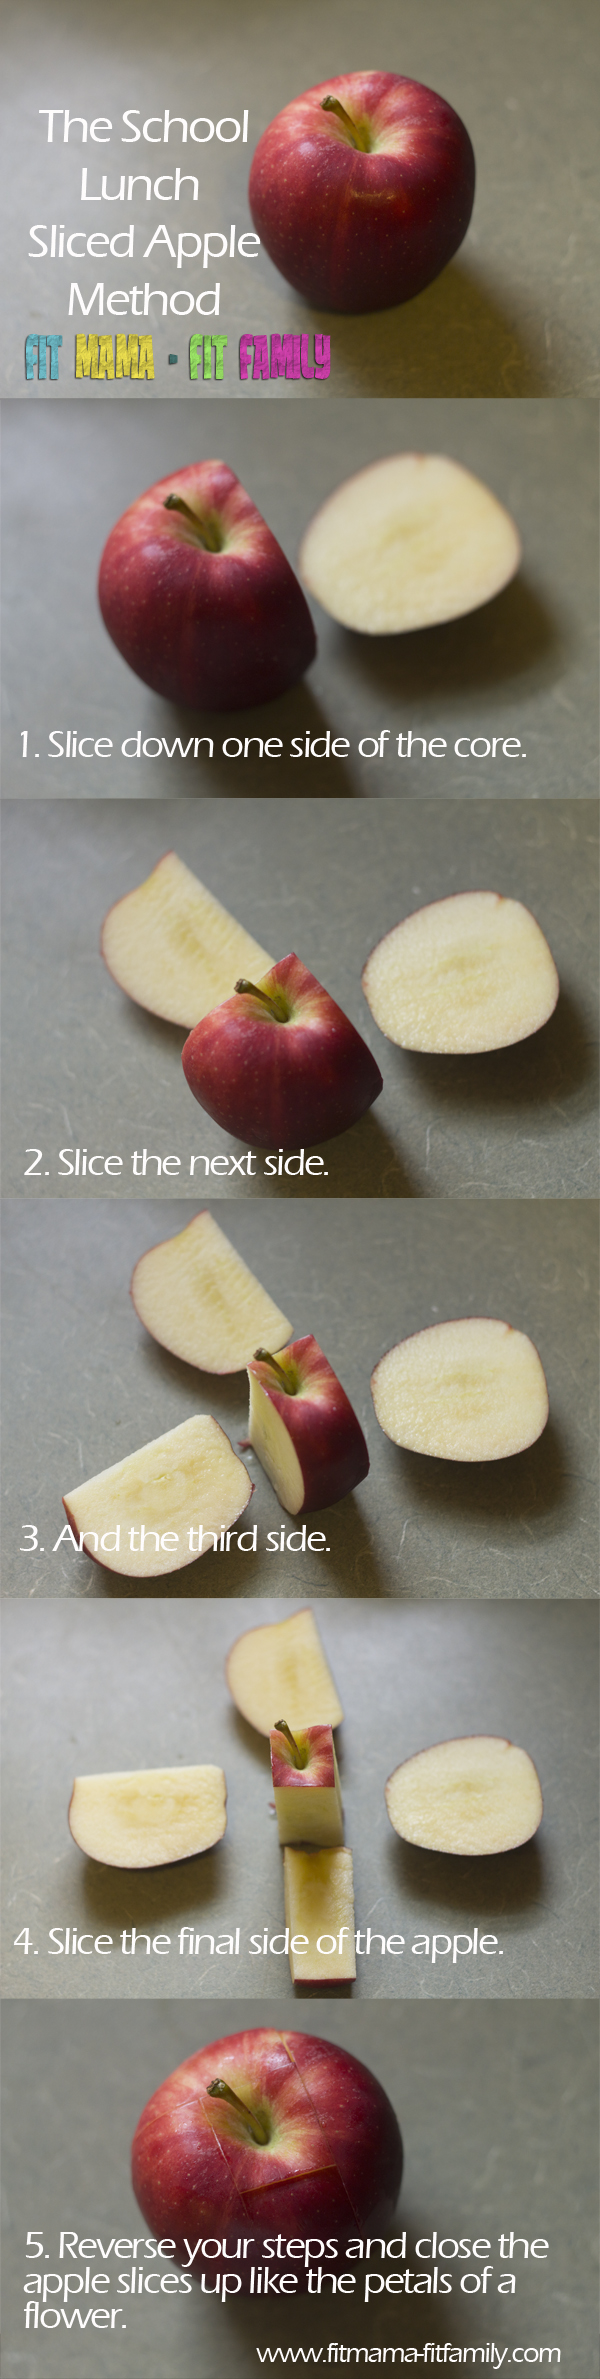 SlicedAppleMethod